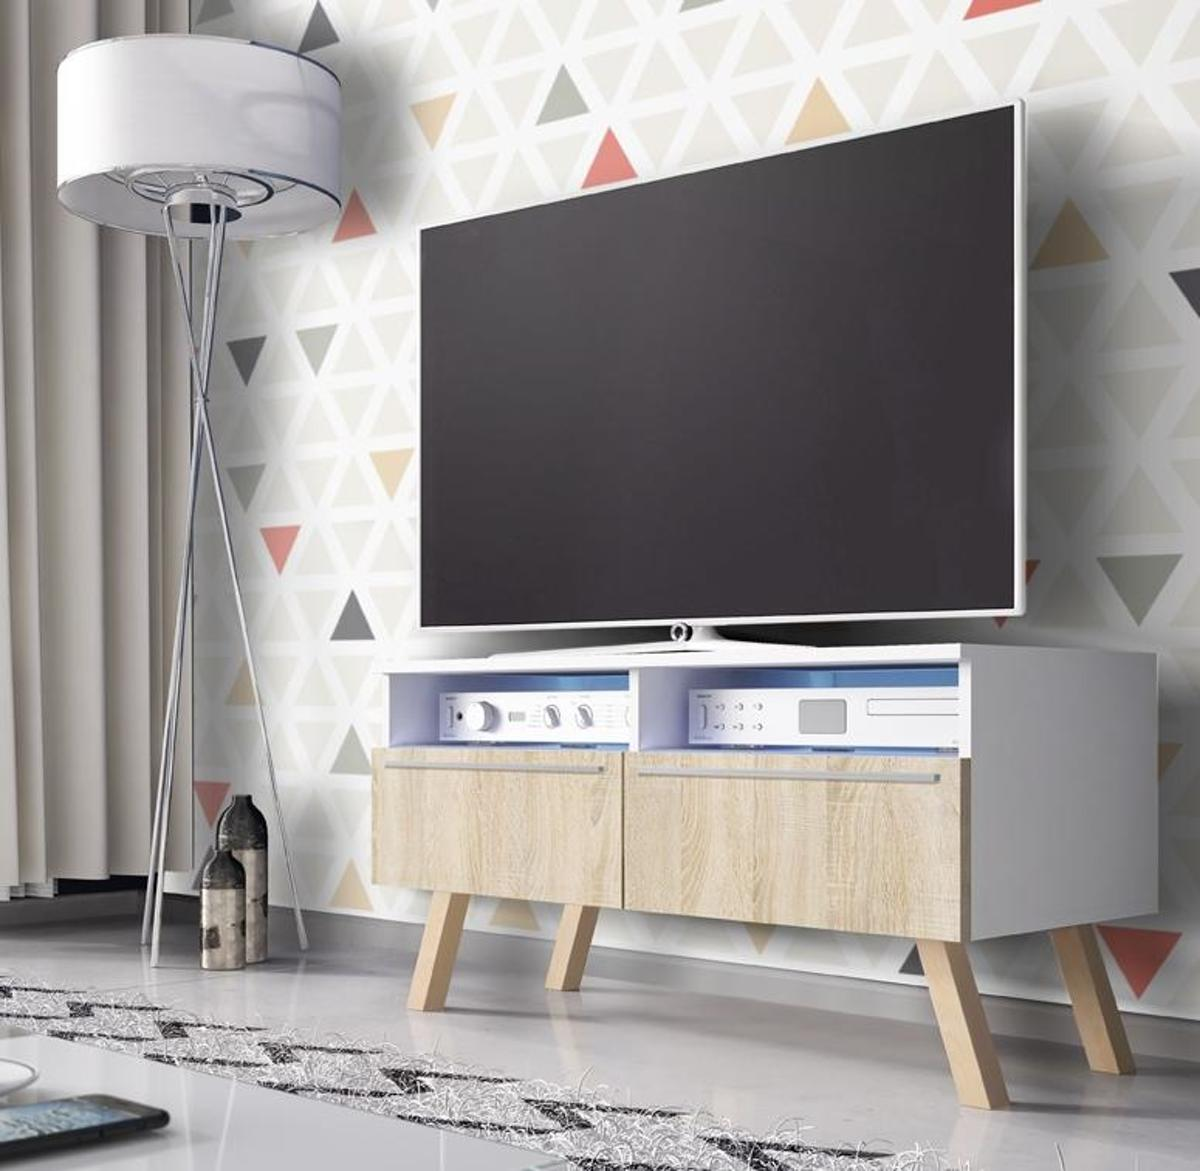 Tv Kast Dressoir.Top Honderd Tv Kast Dressoir Siena Met Led Verlichting Wit Licht